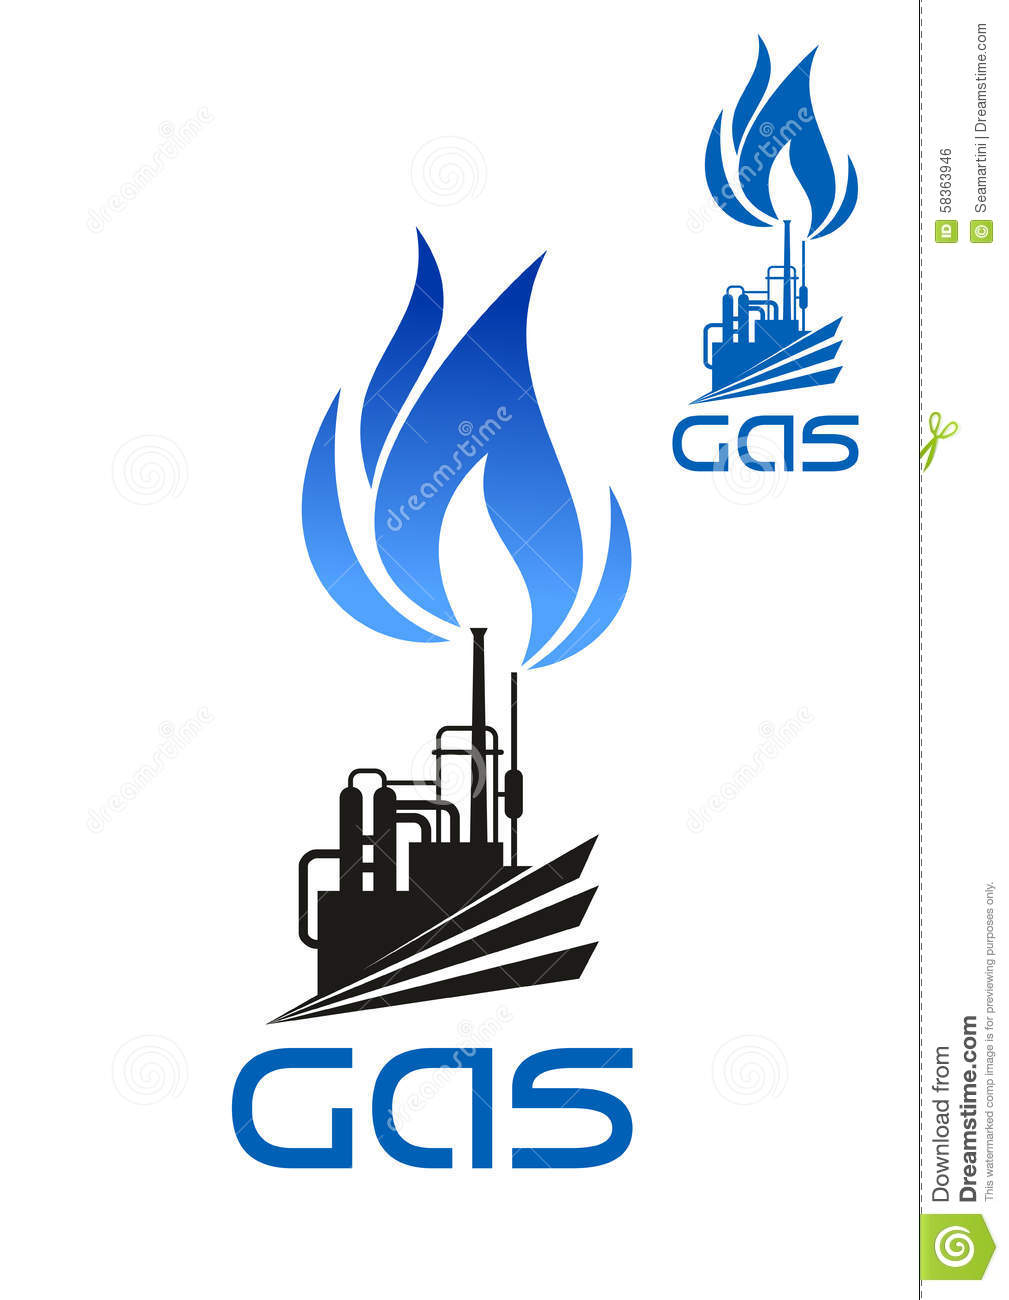 Natural Gas Symbol Icon | www.imgkid.com - The Image Kid ...